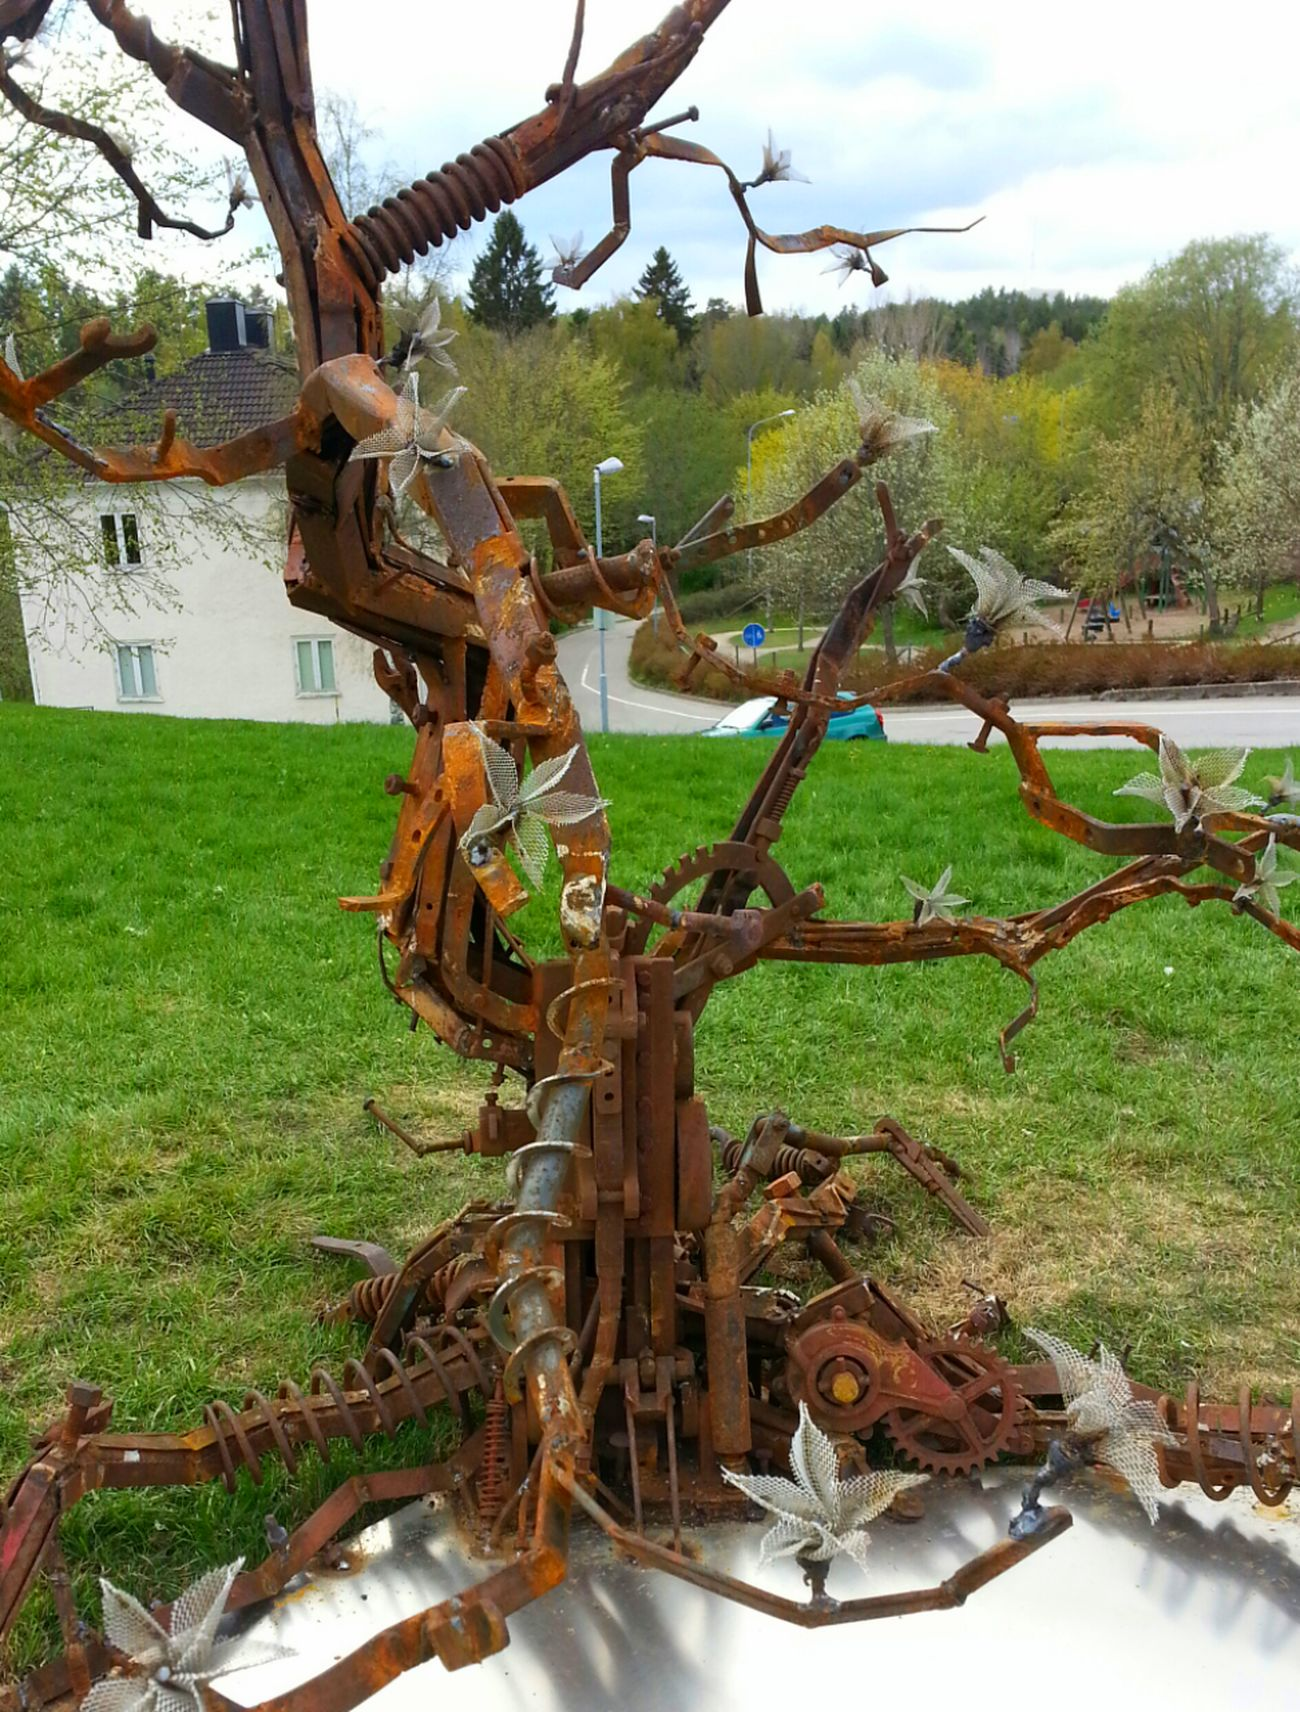 works of art, a Tree made of old Iron Scrap Architecture